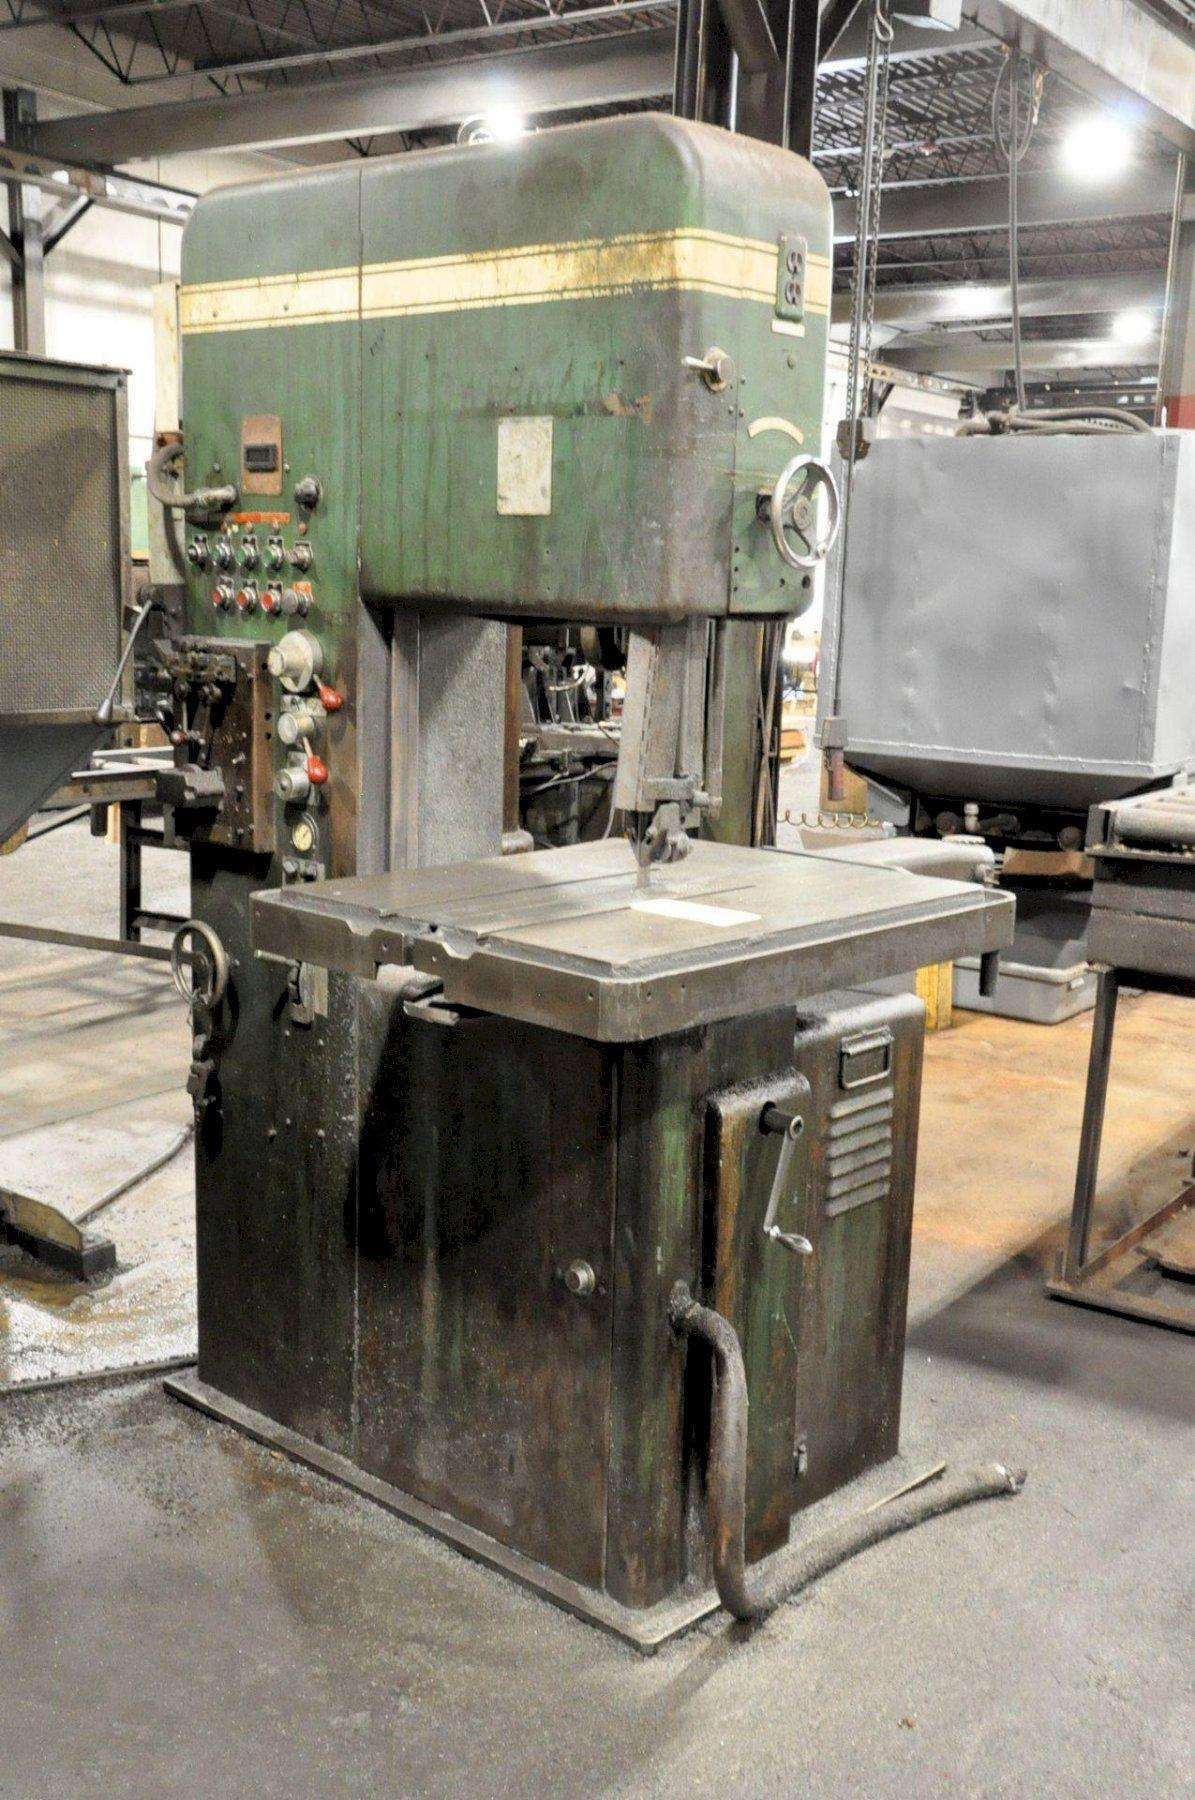 20' POWERMATIC VERTICAL BANDSAW: STOCK #73435